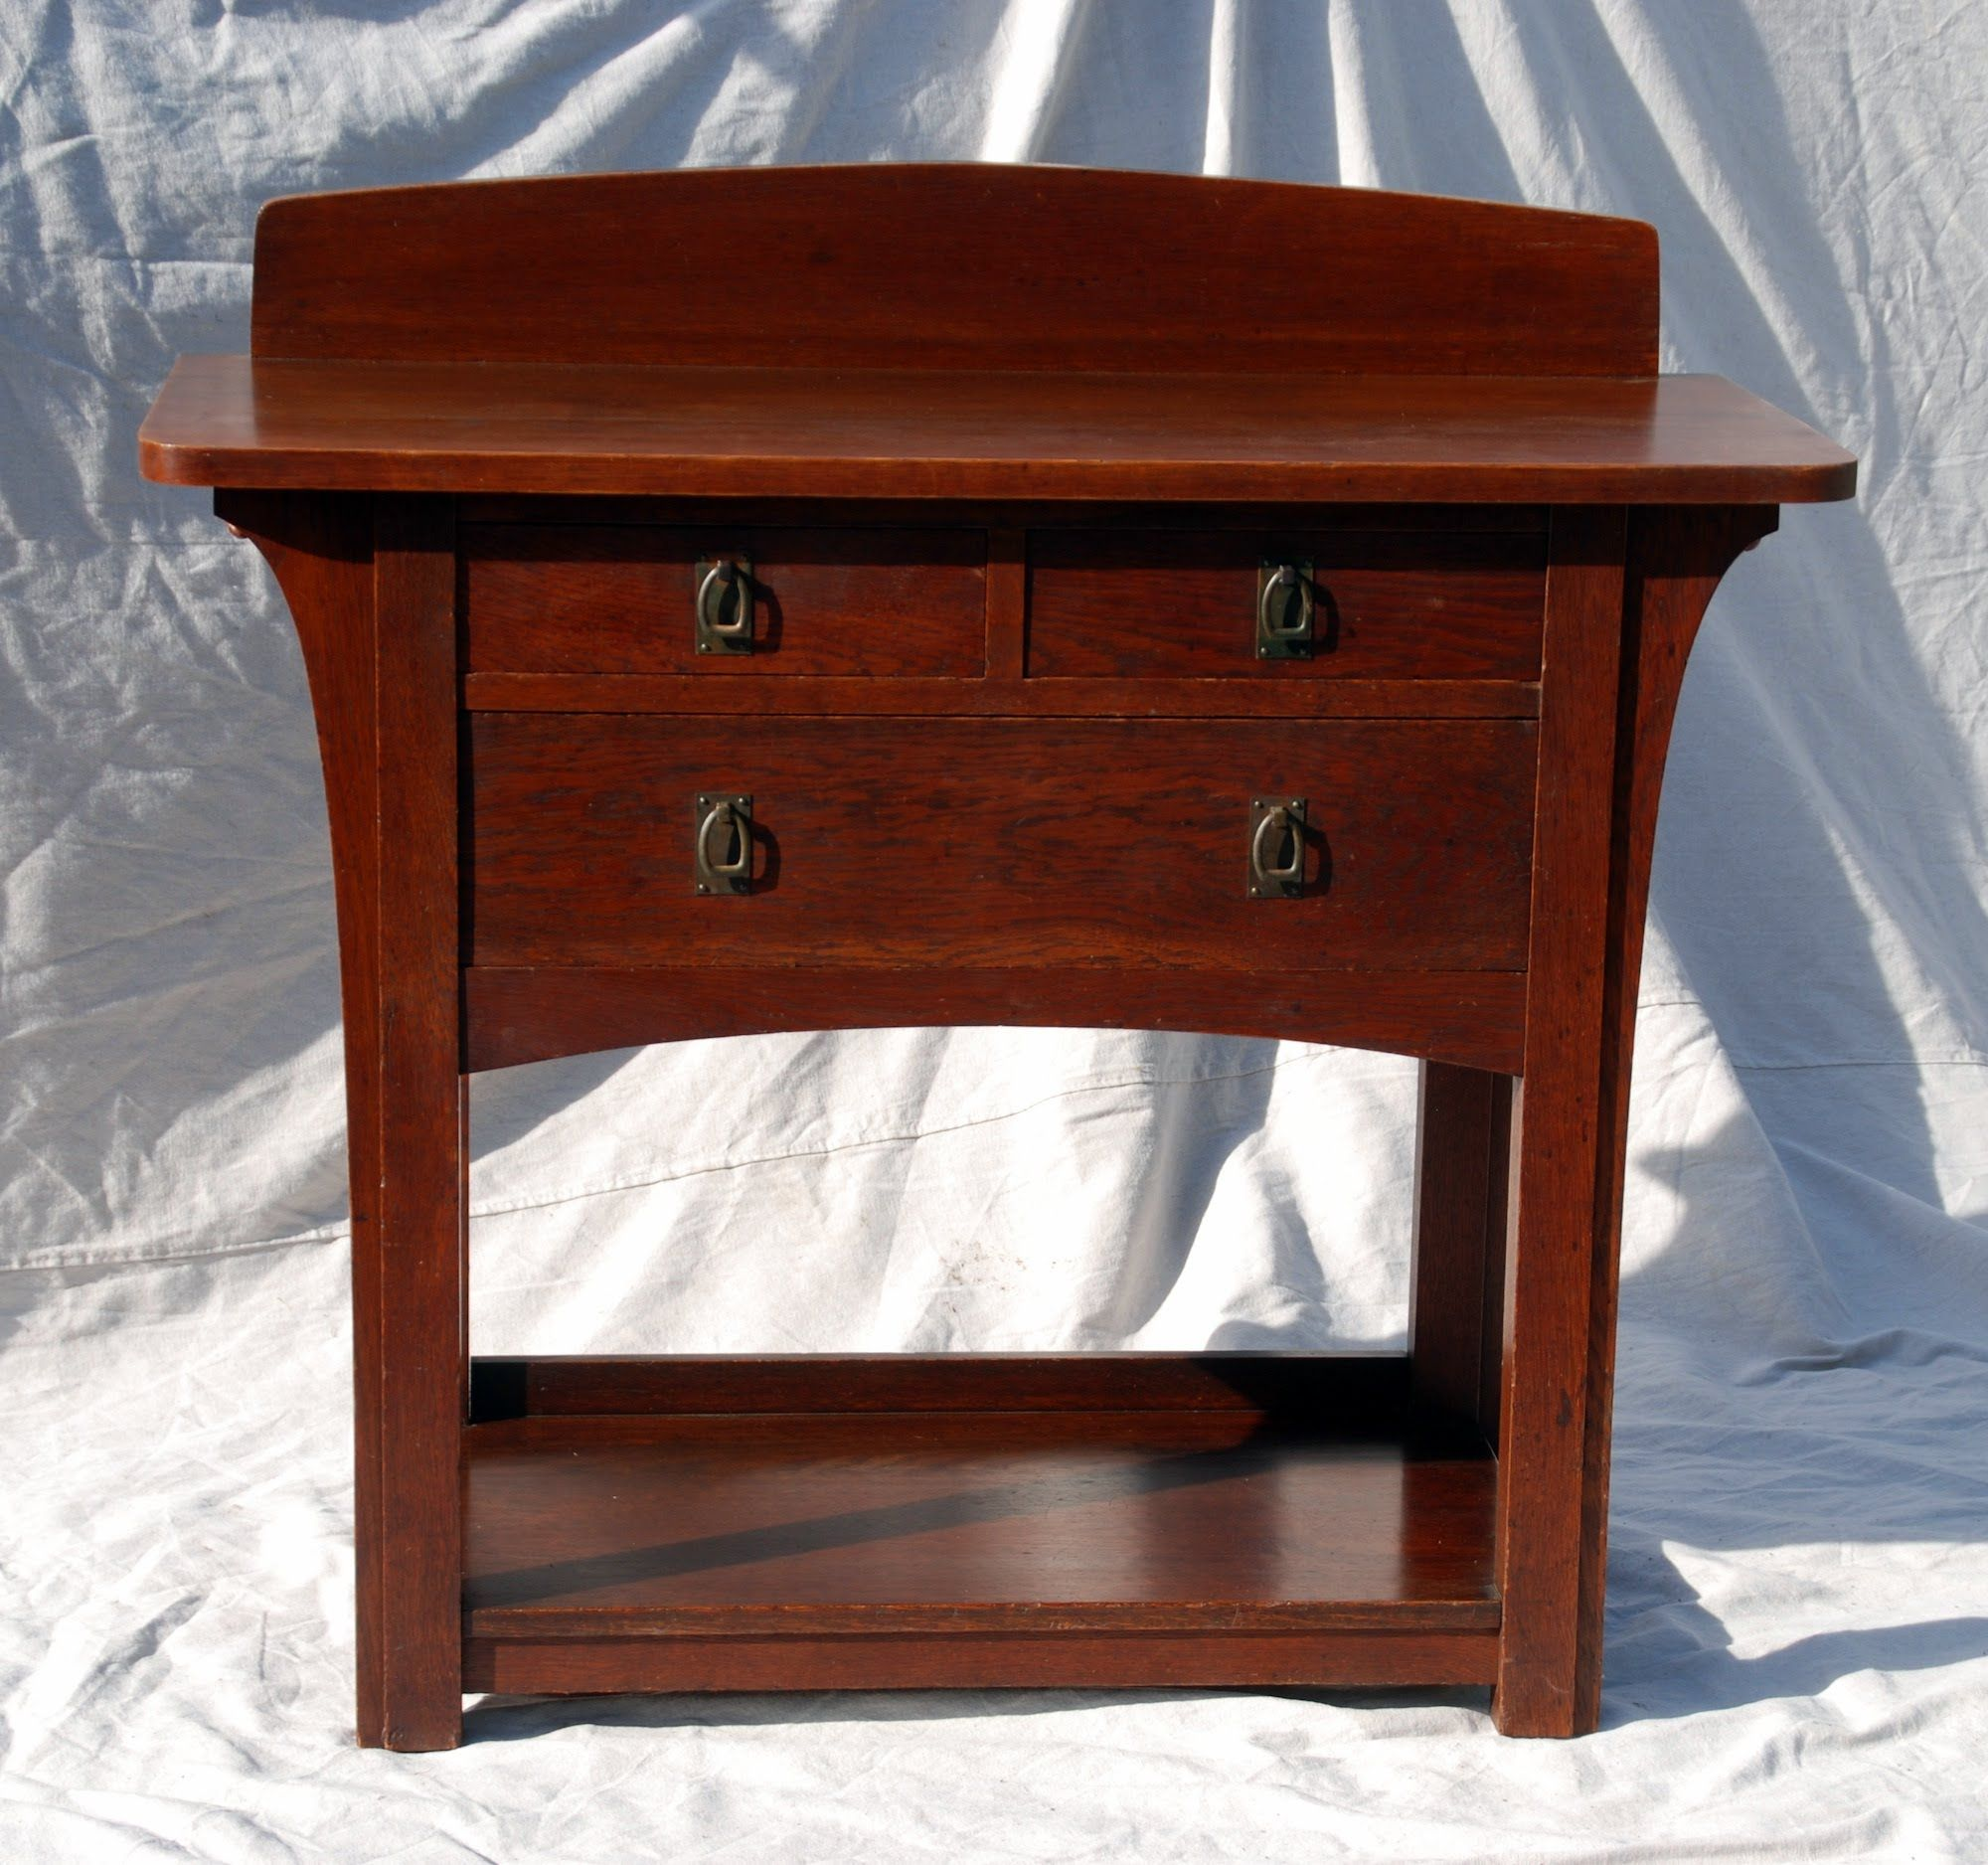 Limbert Furniture Rare Early Limbert Server Sideboard Arts And Crafts Furniture Arts Crafts Style Furniture Projects